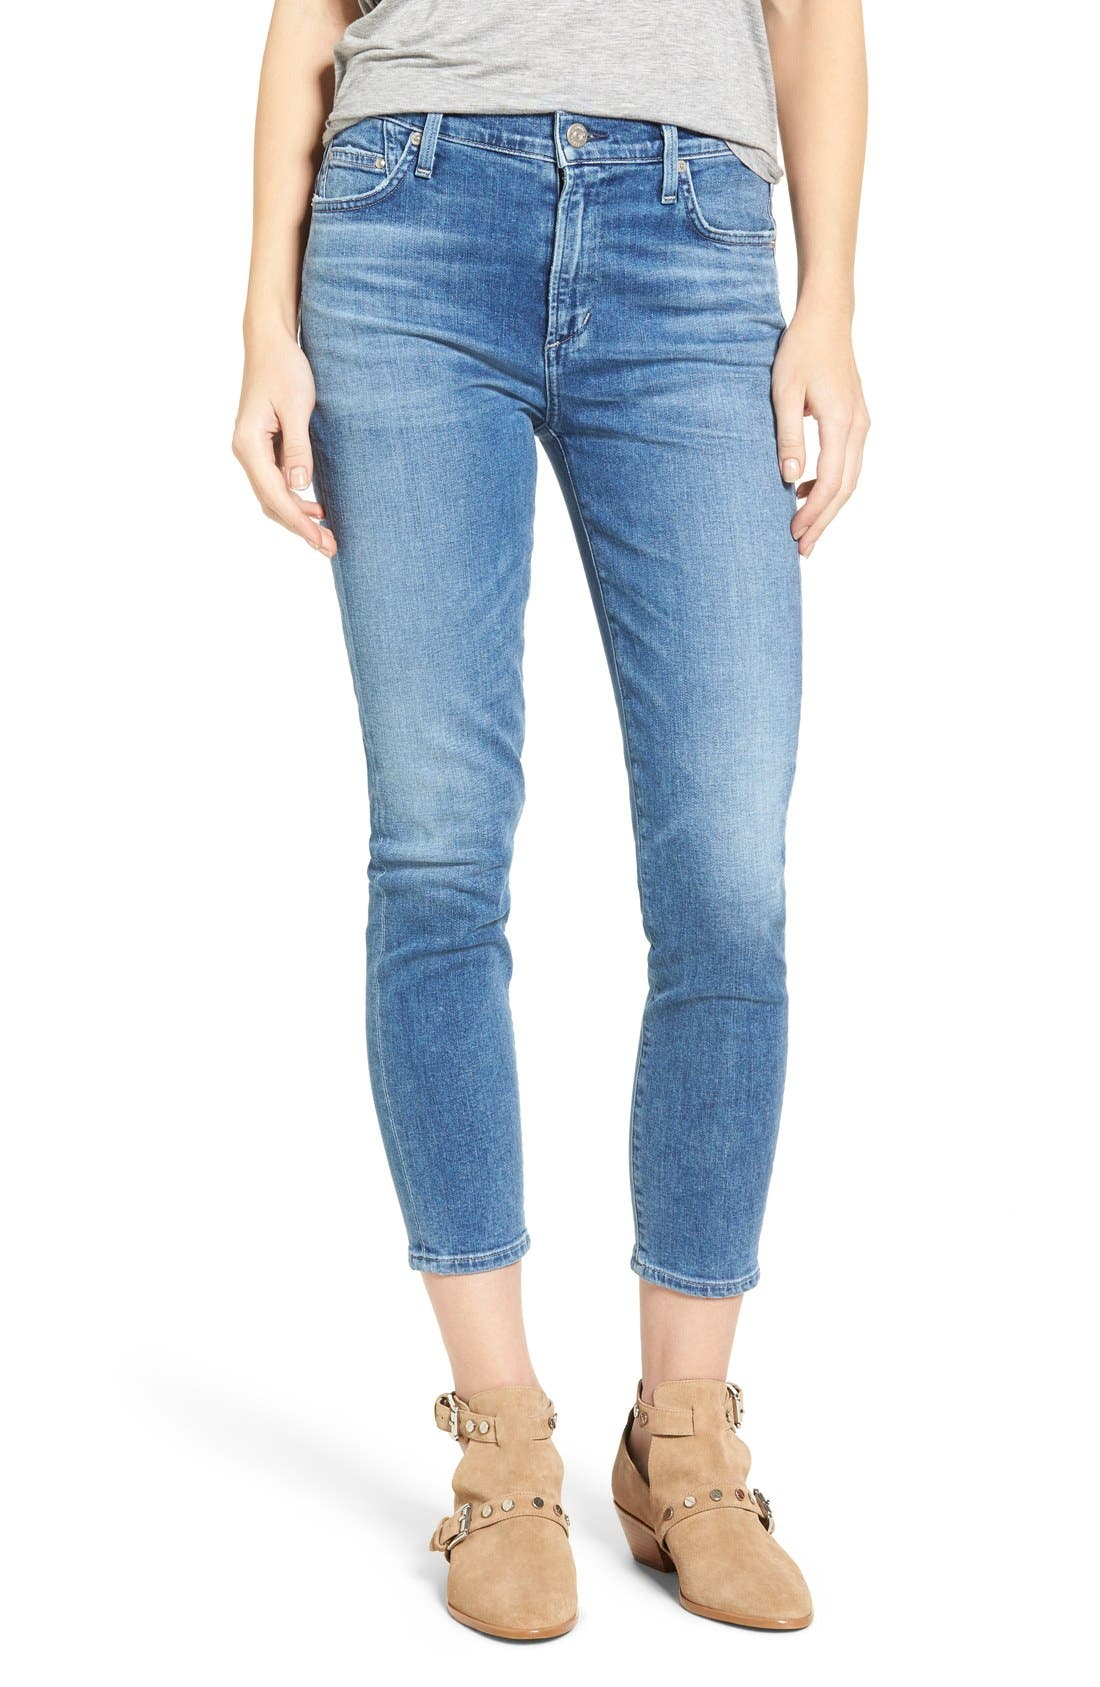 Rocket High Waist Crop Skinny Jeans,                         Main,                         color, Pacifica